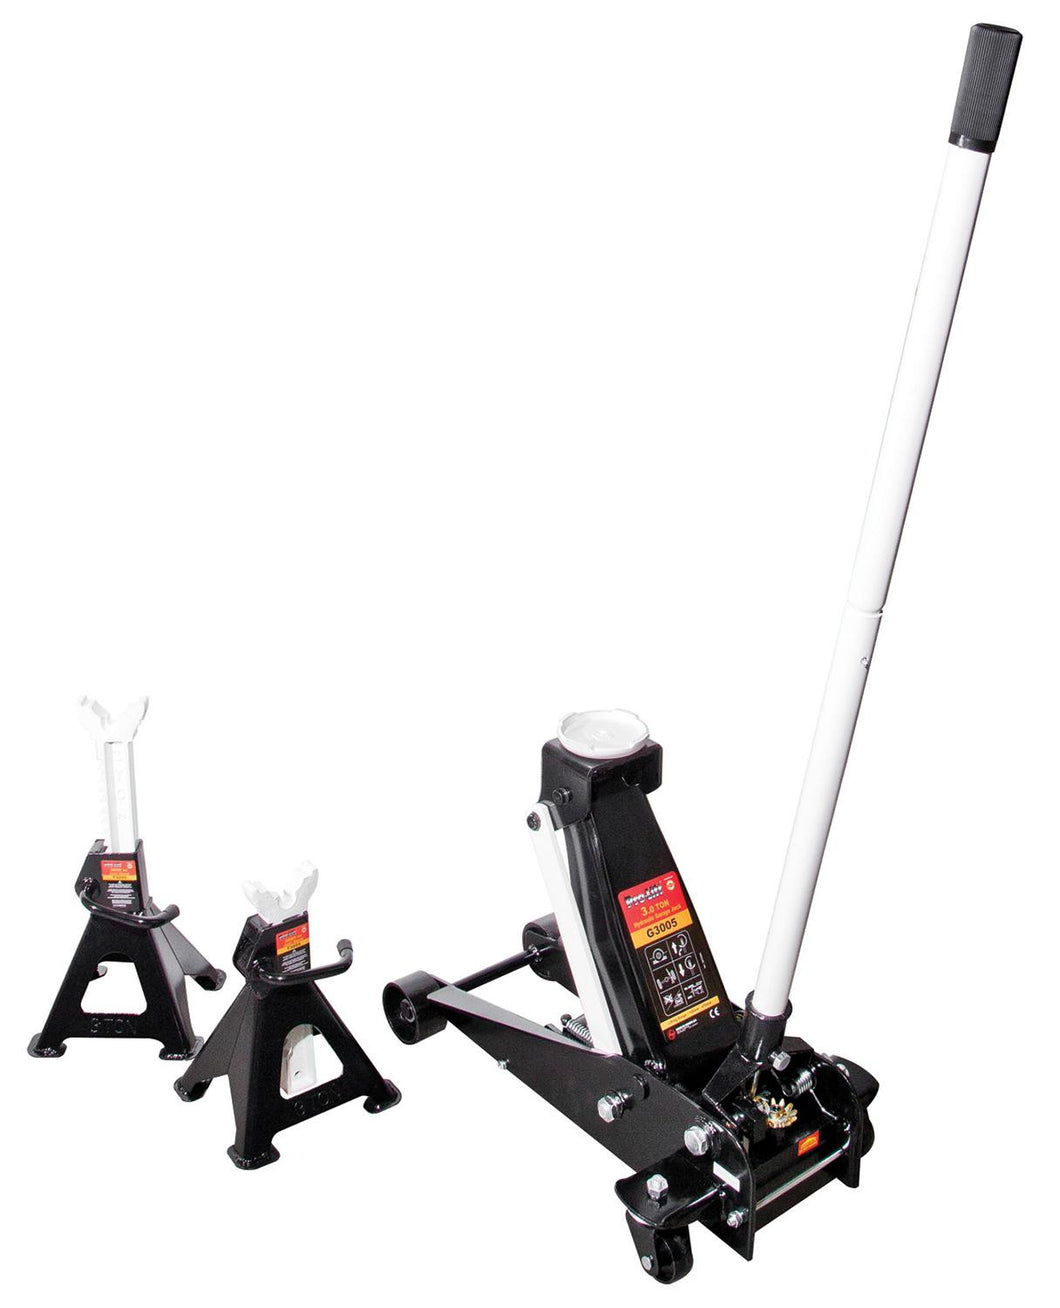 OMEGA PRO LIFT 3 TON WORKSHOP SET (G3005/T3005)